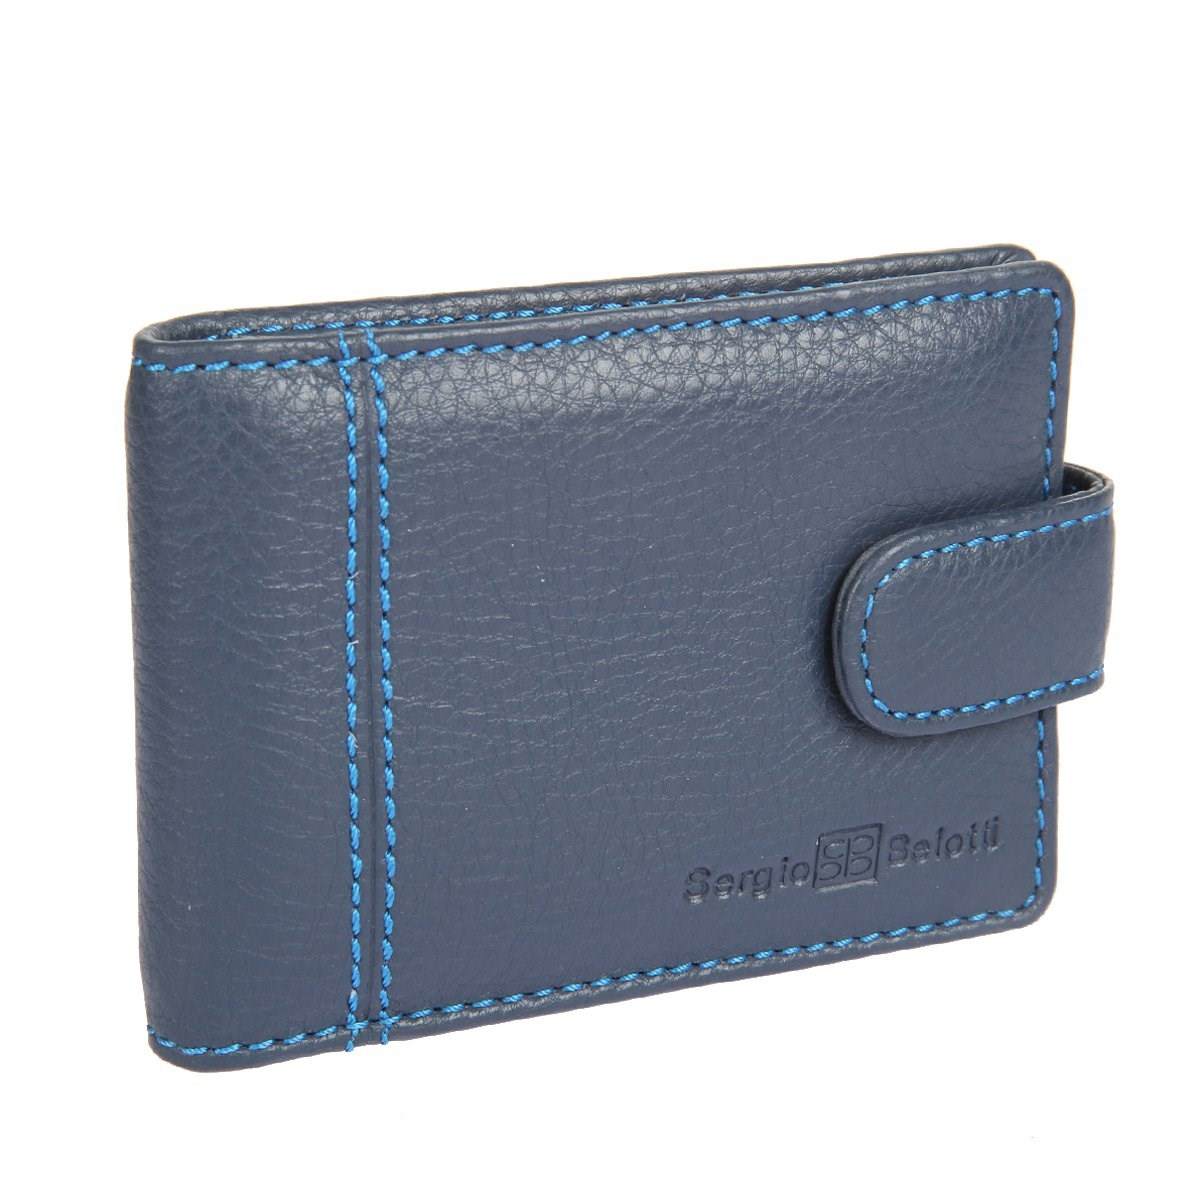 Business Card Holder Sergio Belotti 2929 indigo jeans genuine leather business vintage men s money purse short solid wallets dollar price male carteira masculina with card holders